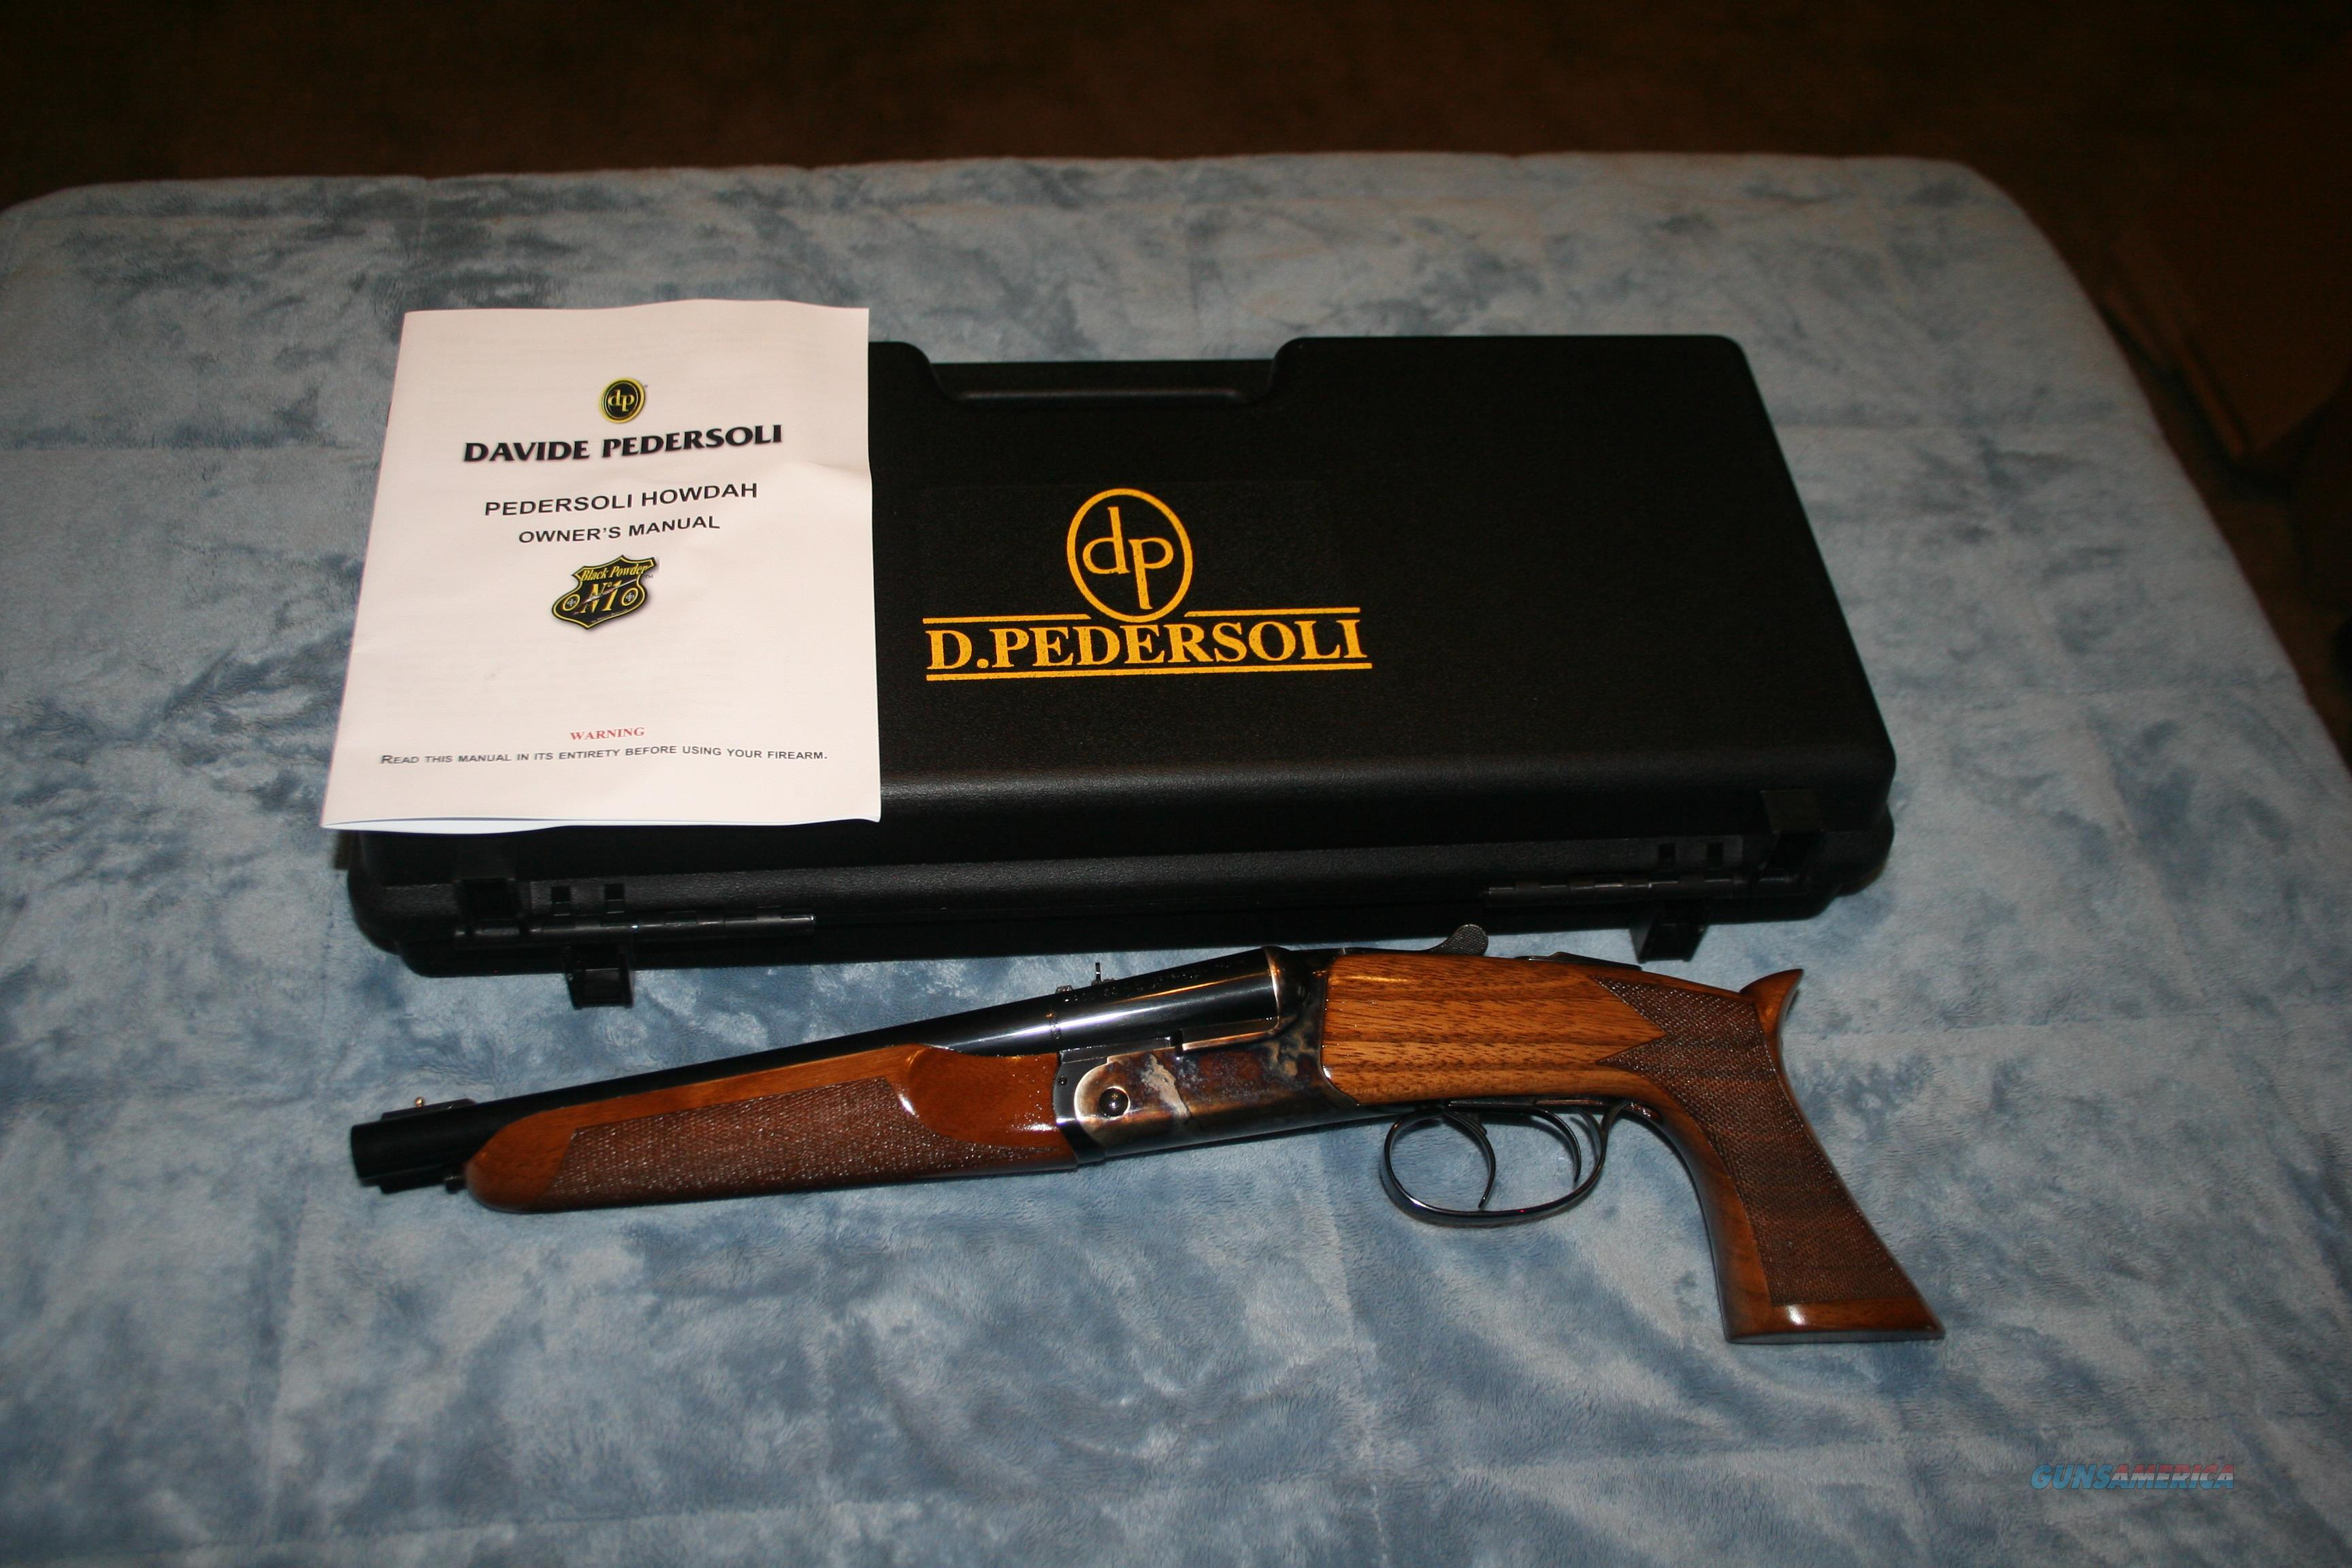 Pedersoli Howdah 45Lc/ 410 NOT PERCUSSION OR BLACKPOWDER, rifled barrels